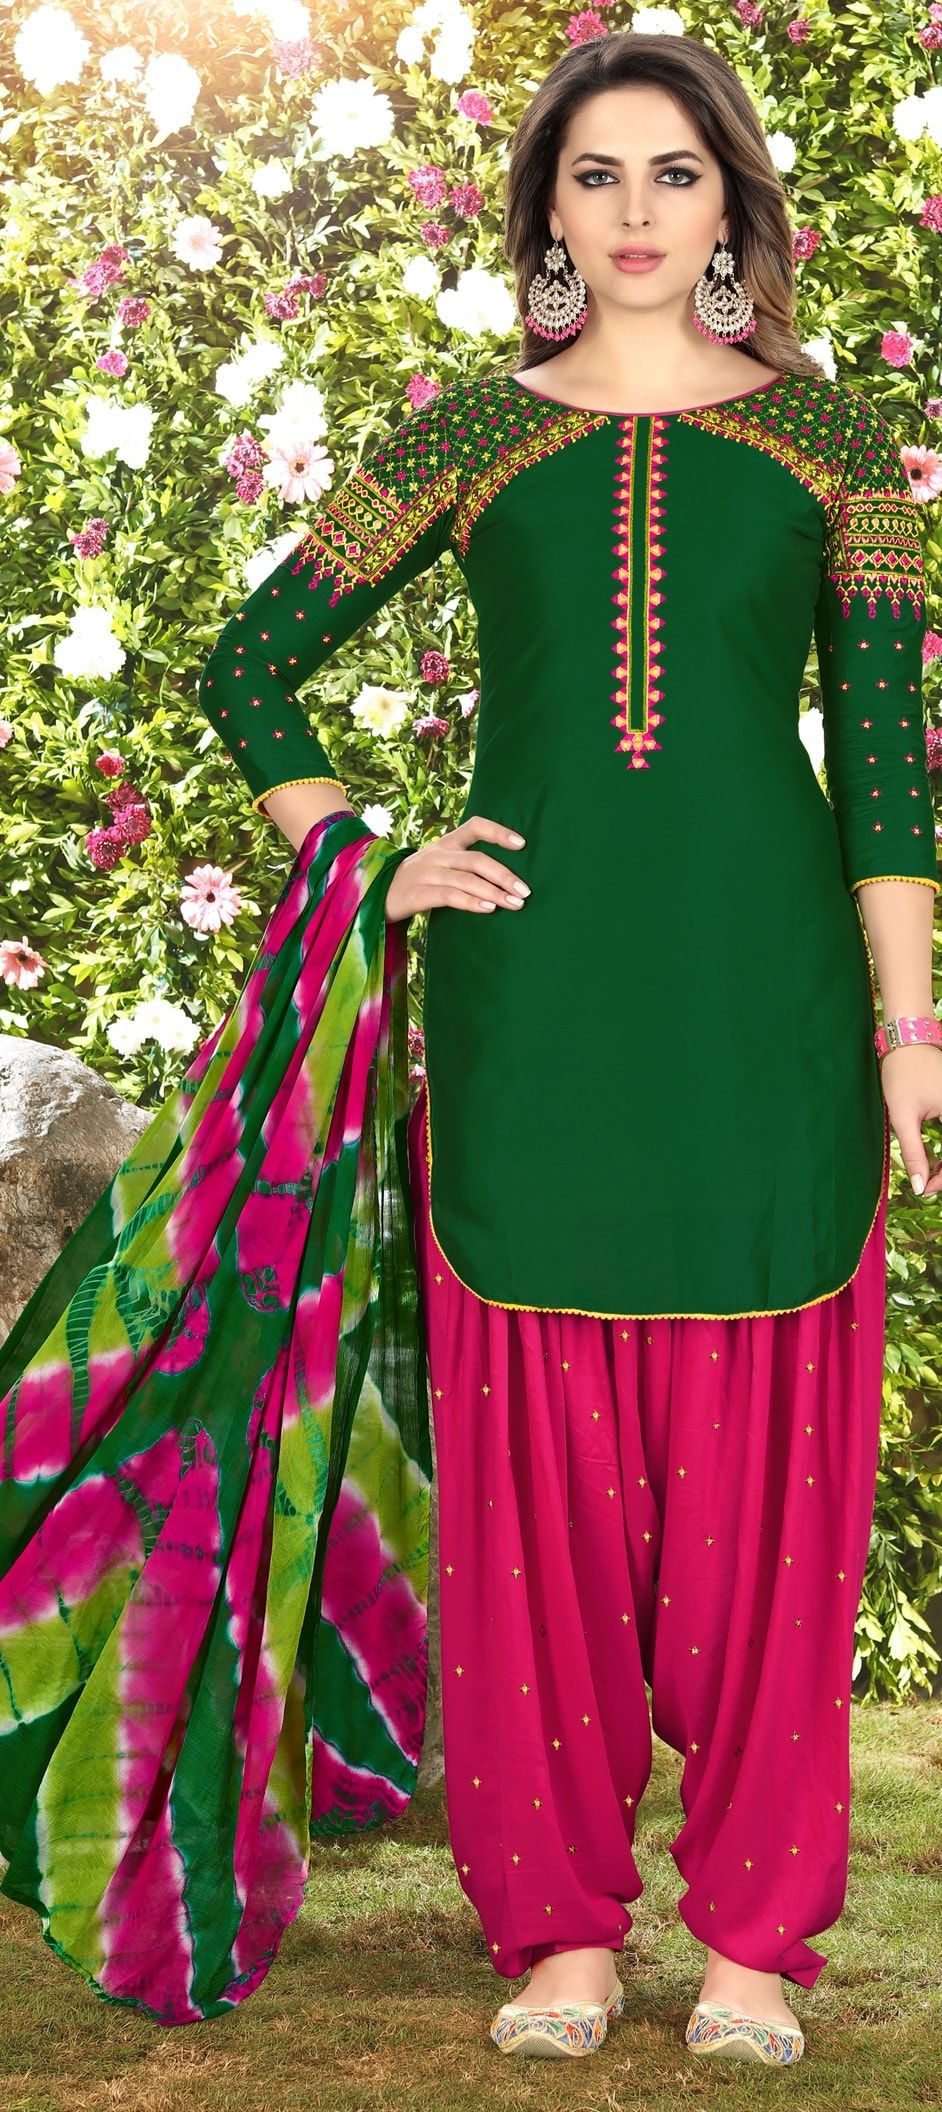 204108a97e 905722: Green color family unstitched Party Wear Salwar Kameez .